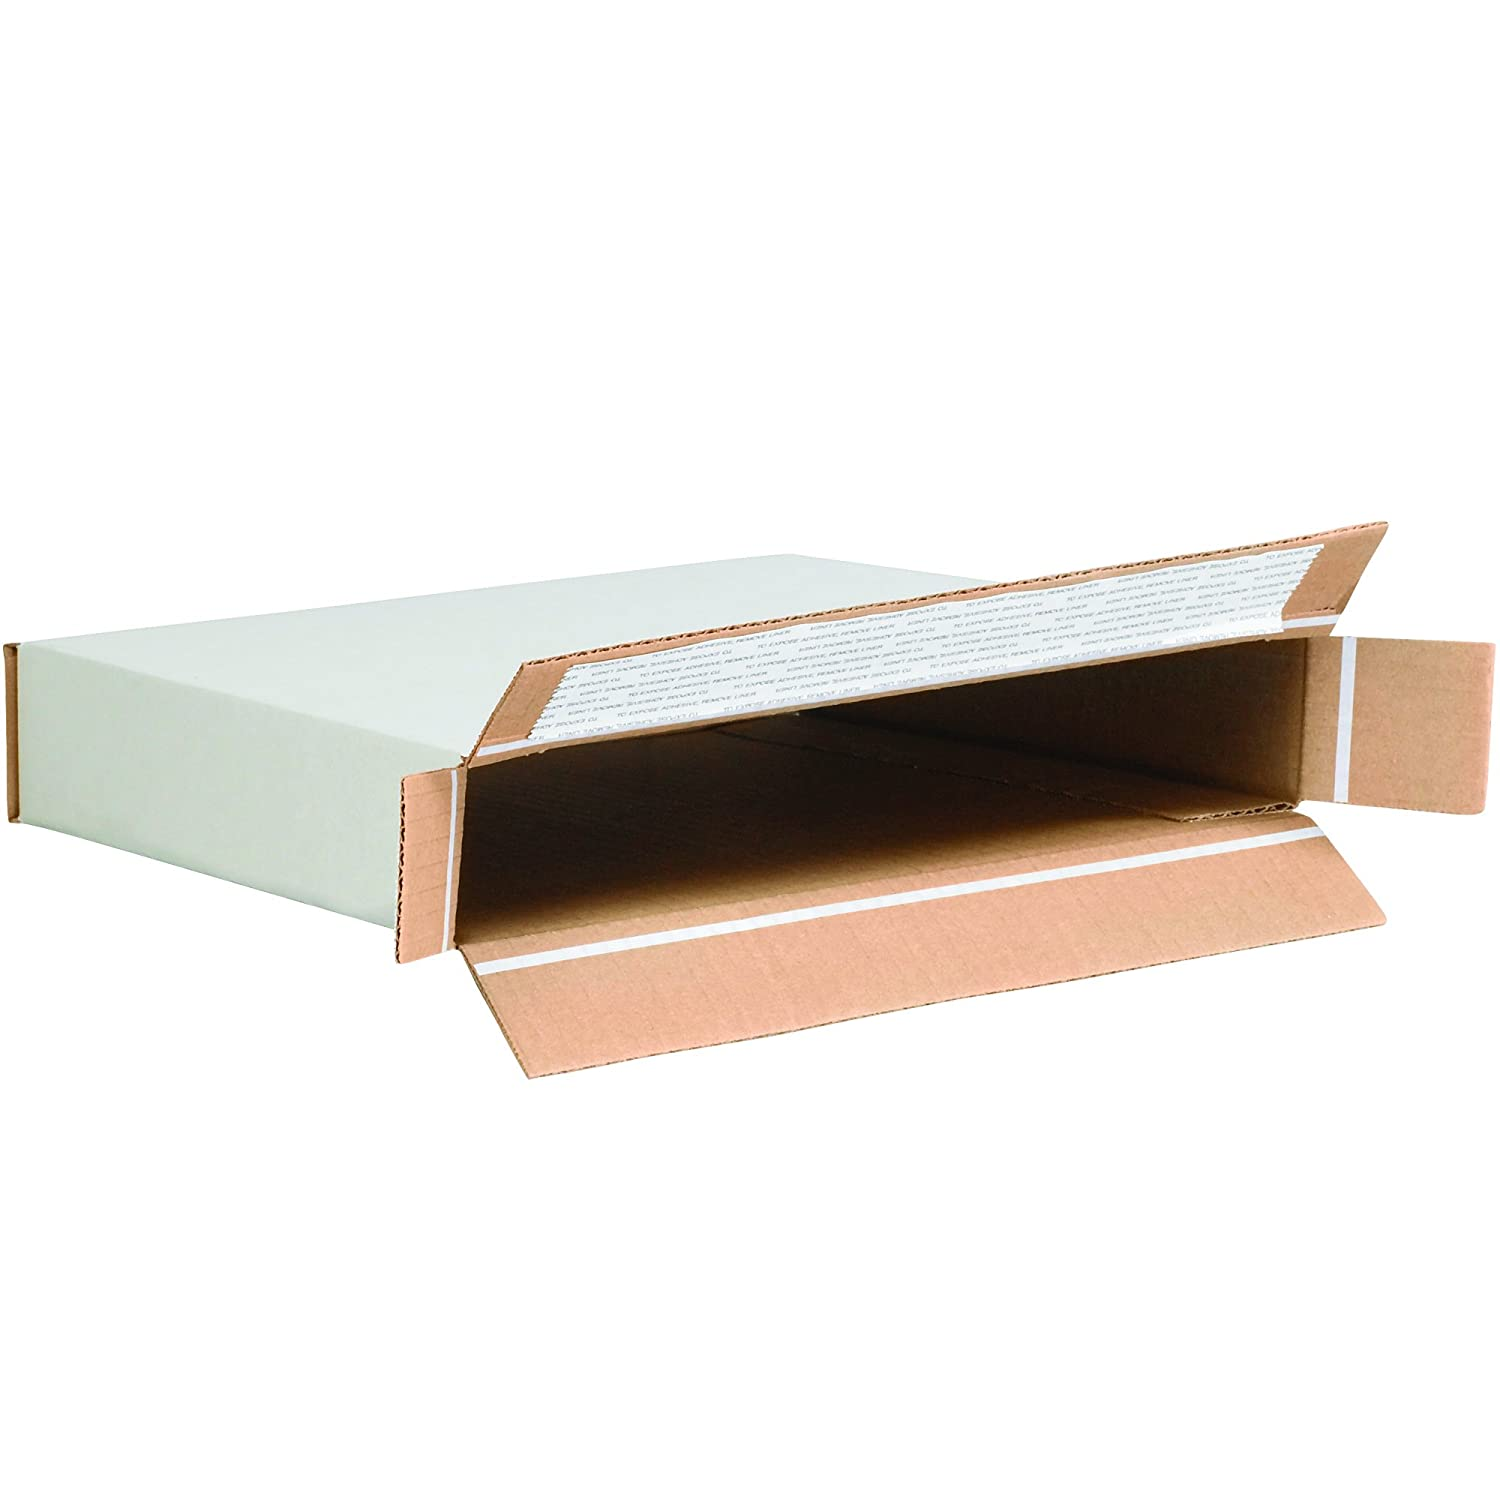 Large White Mailing Boxes Corrugated Die-Cut Boxes with Handles Pack of 10 18 1//4 x 11 3//8 x 4 1//2 Inches Boxes Fast BFMCC4 Cardboard Carrying Cases